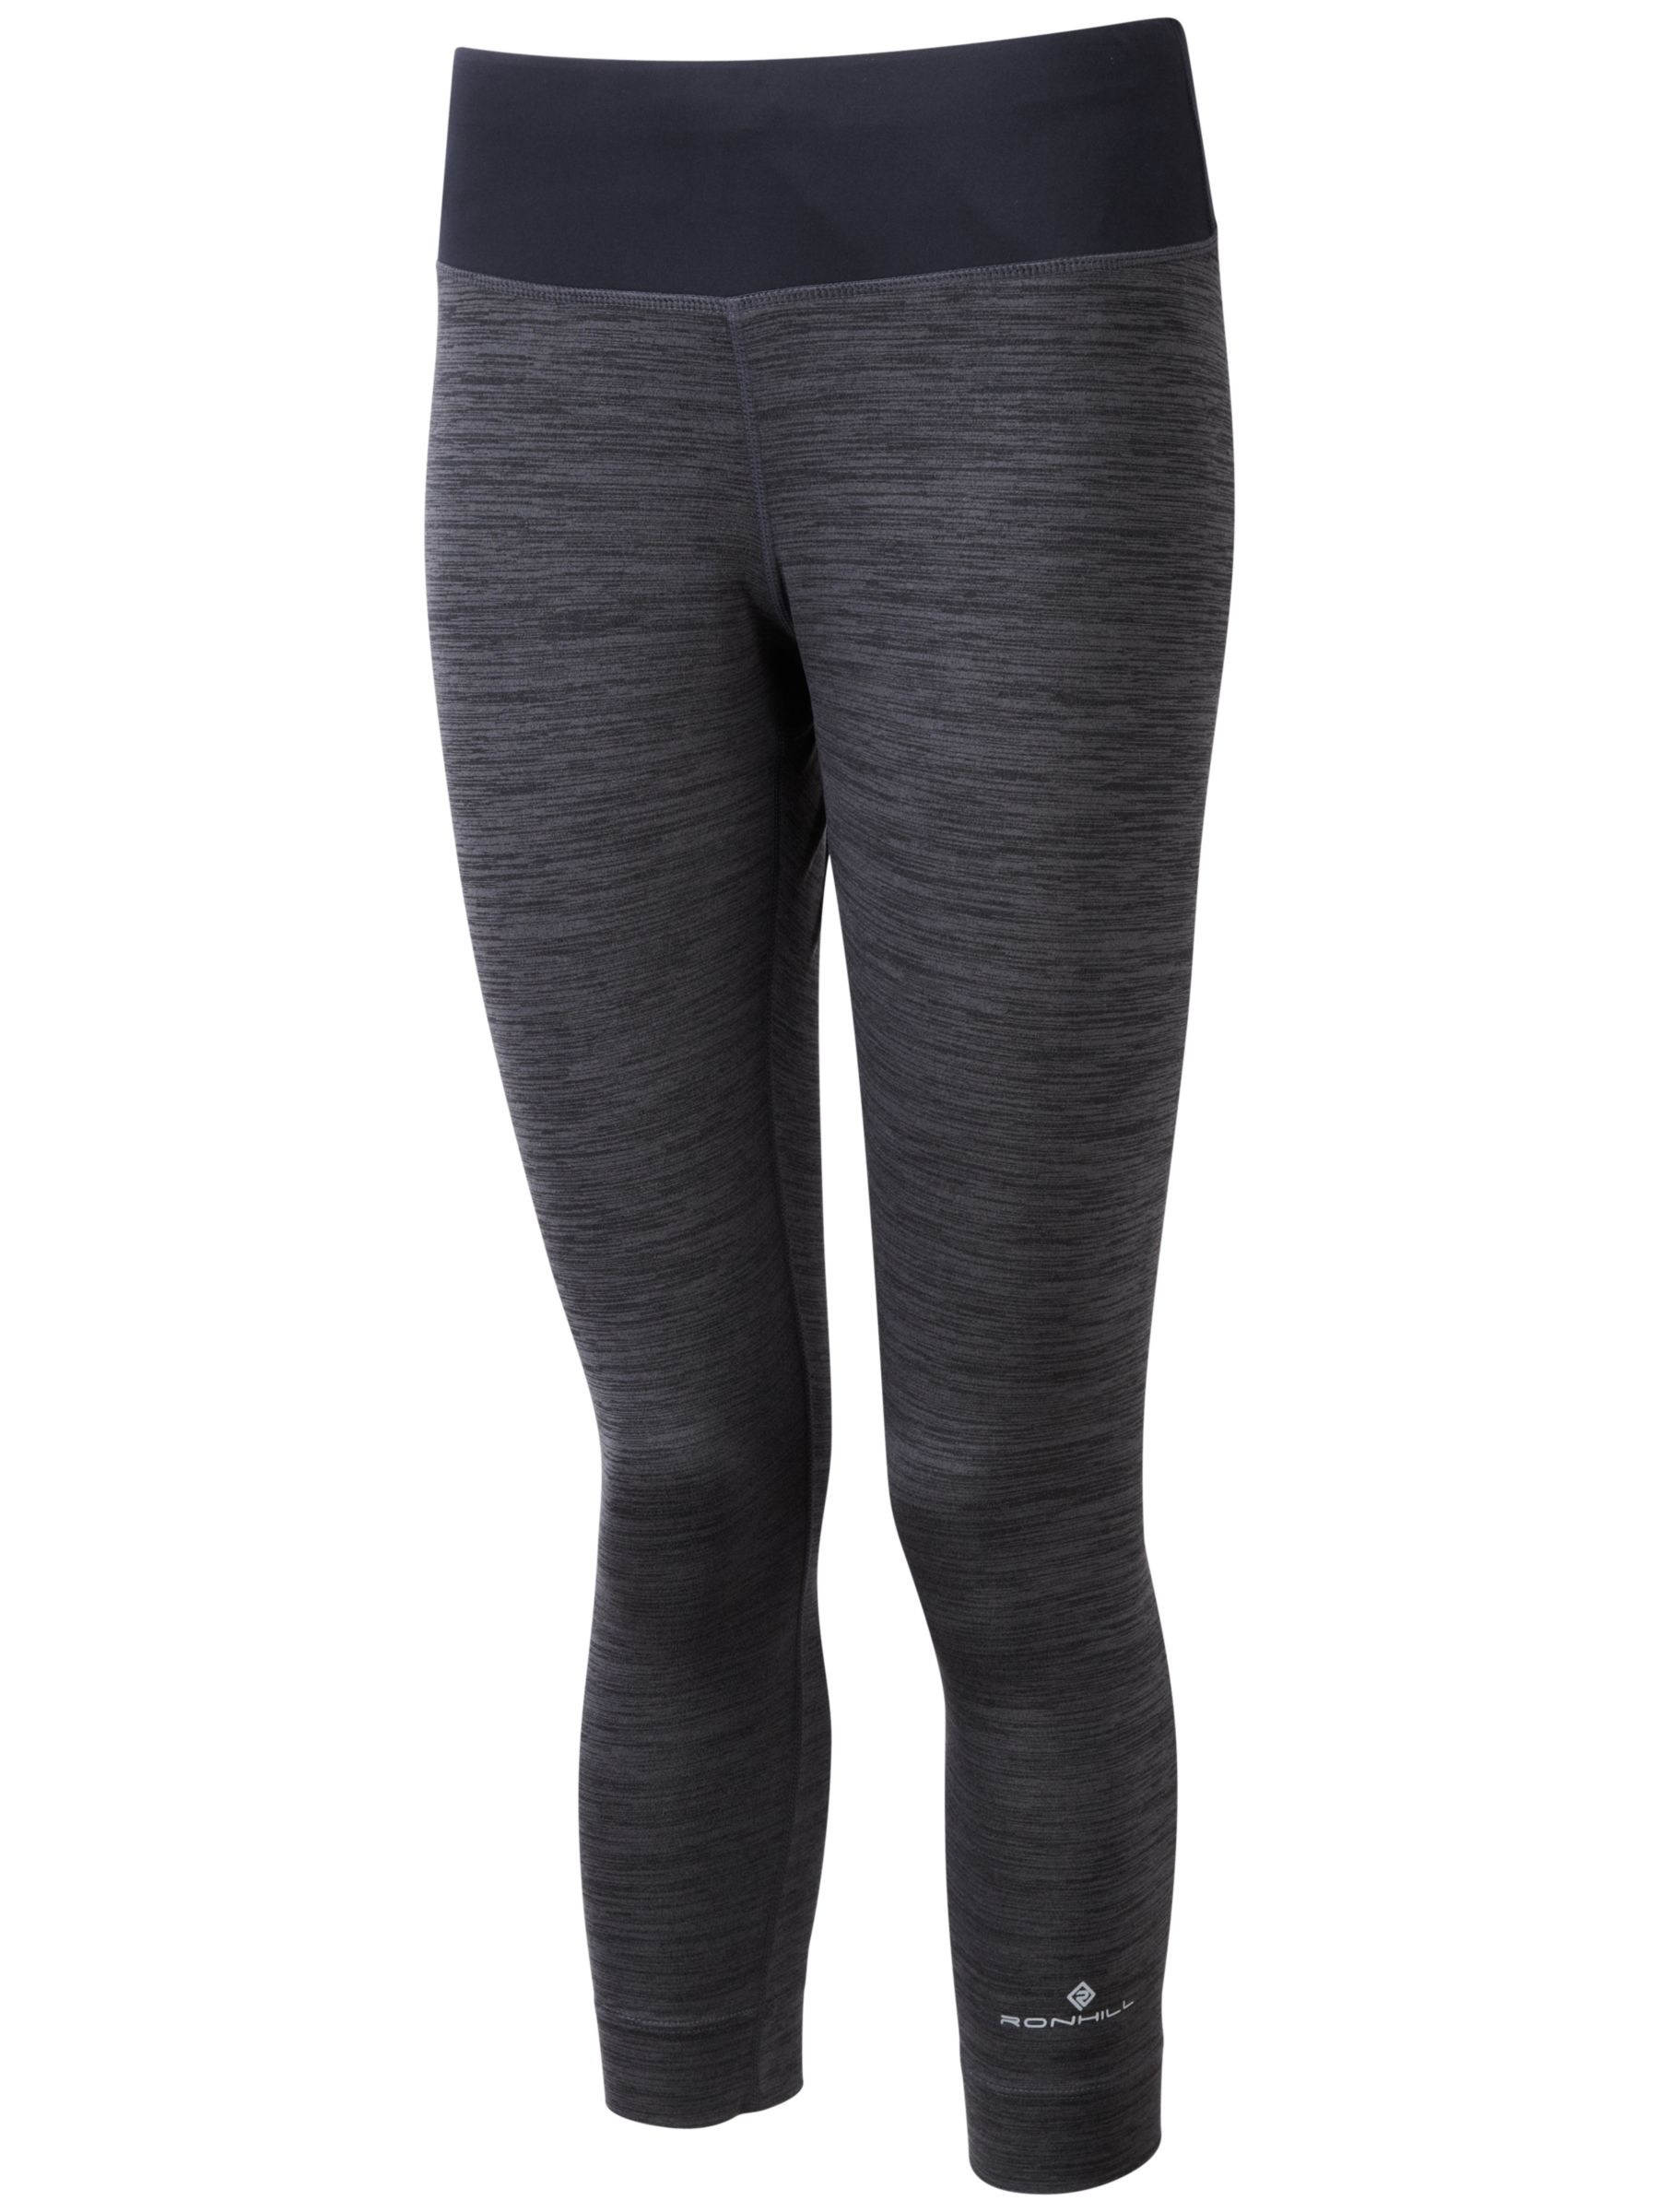 Ronhill Ronhill Momentum Victory Cropped Running Tights, Grey